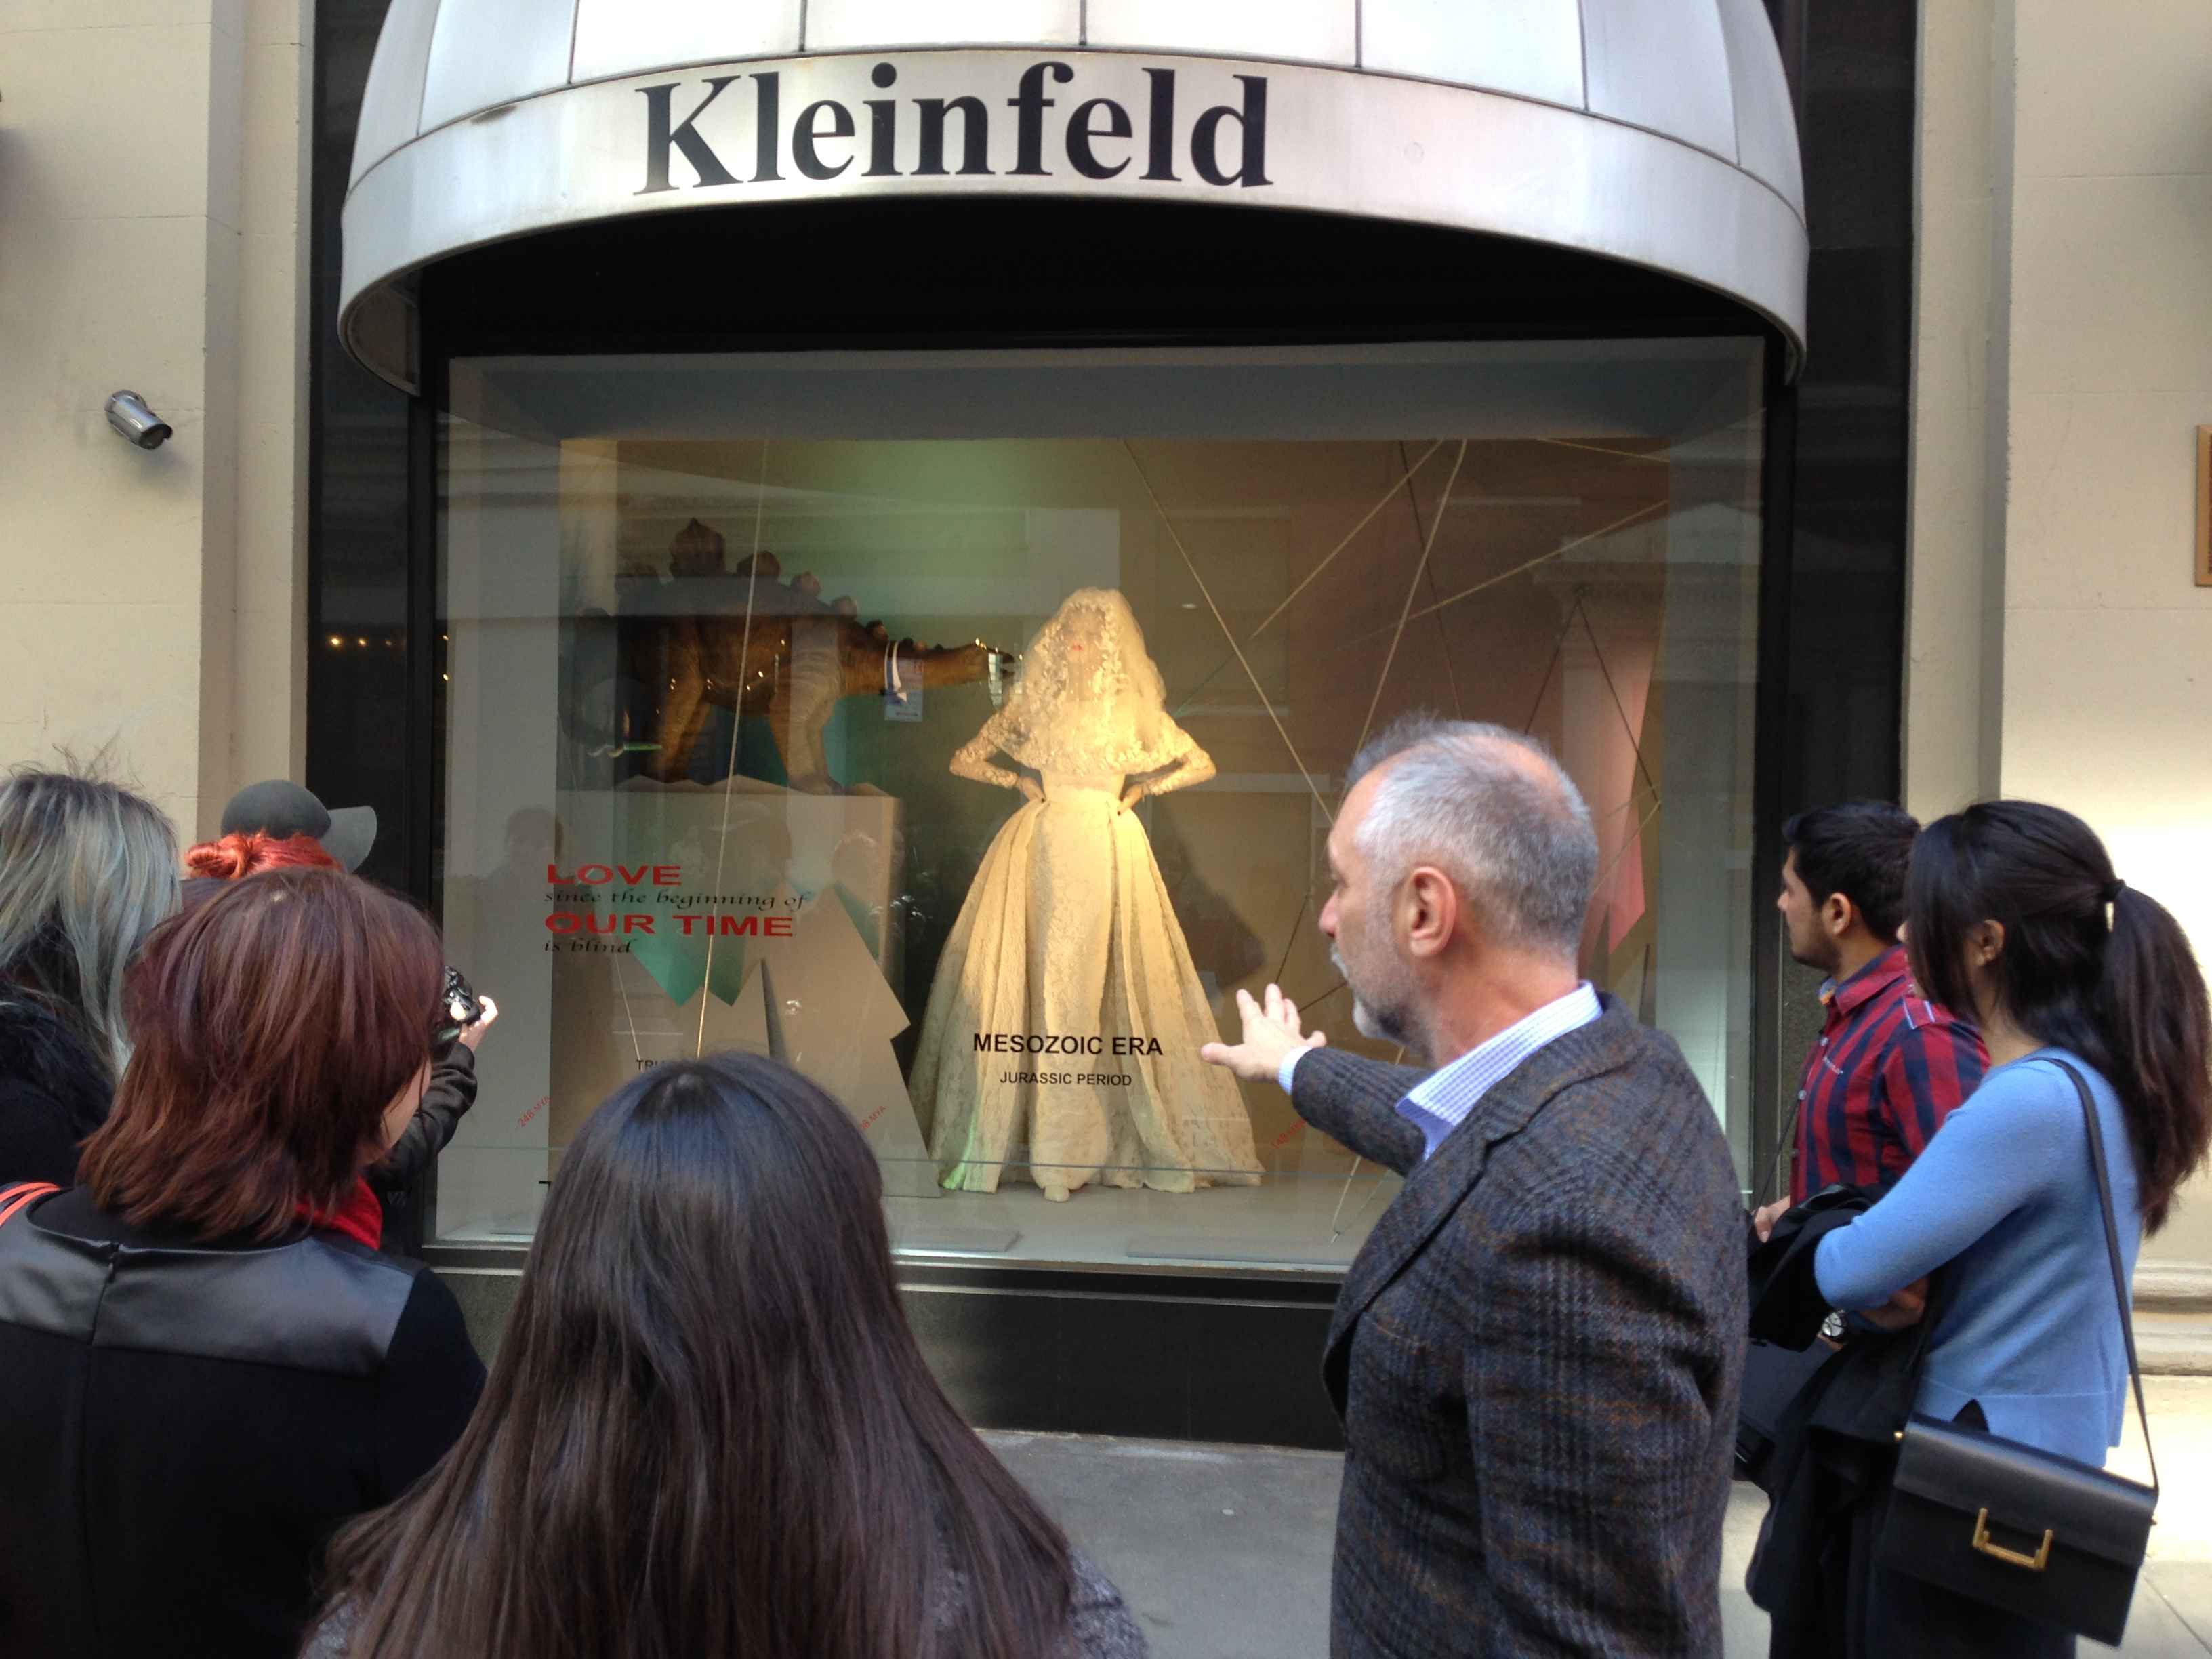 10 Things to Do In NYC Right Now - Fashion Windows Walking Tour - Kleinfeld+Bridal+WindowsWear.com